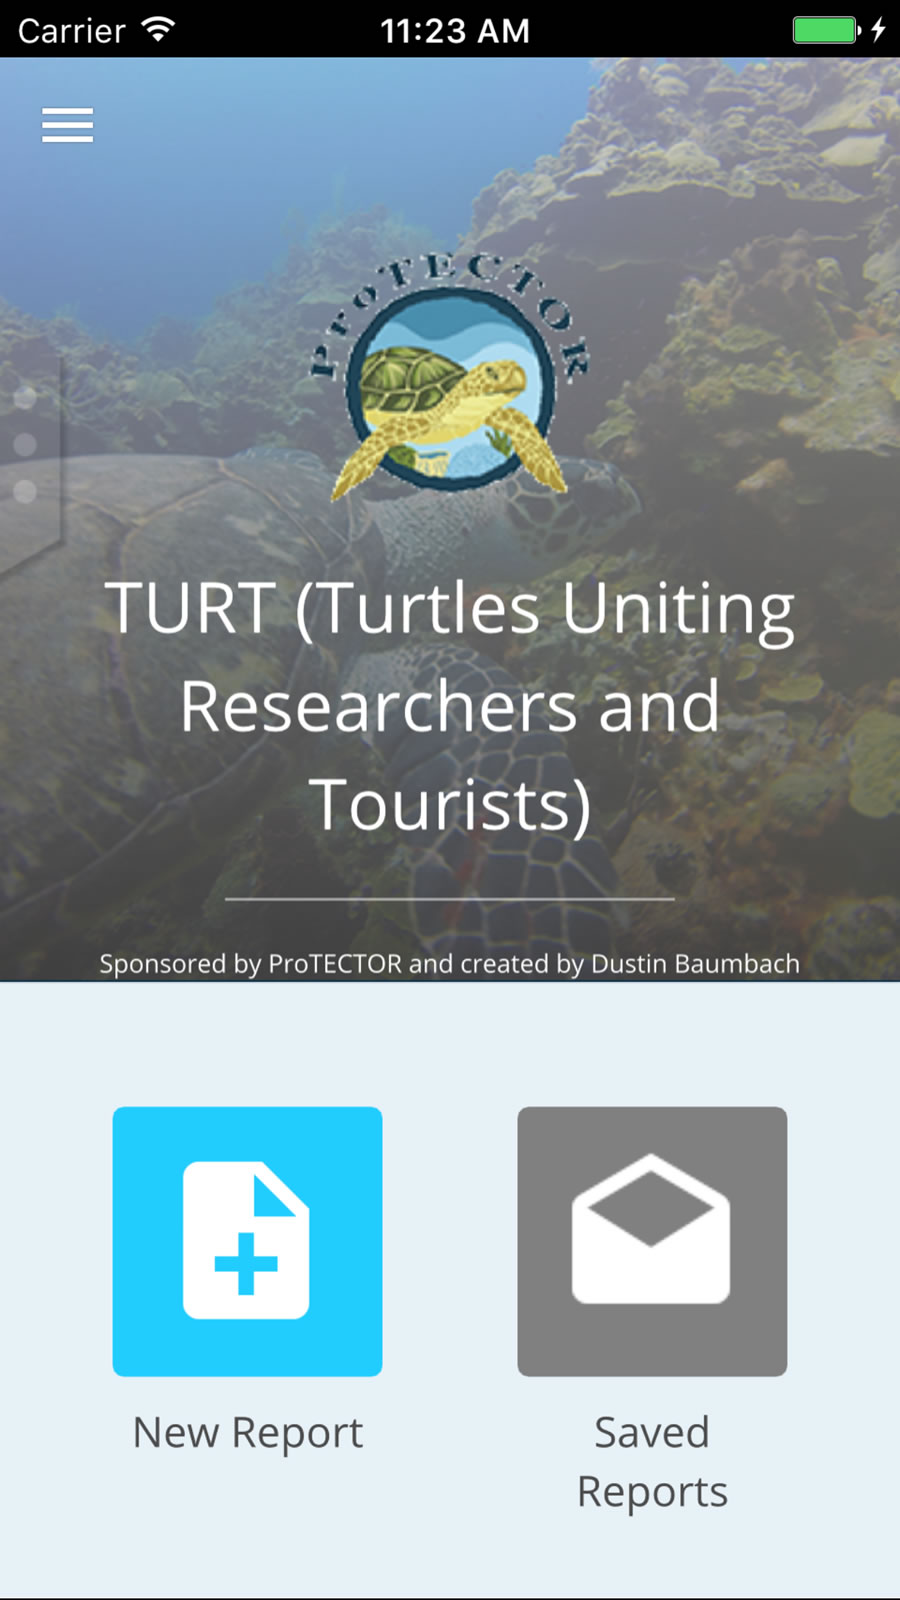 Loma Linda University PhD student and researcher Dustin Baumbach used AppStudio for ArcGIS to build TURT.